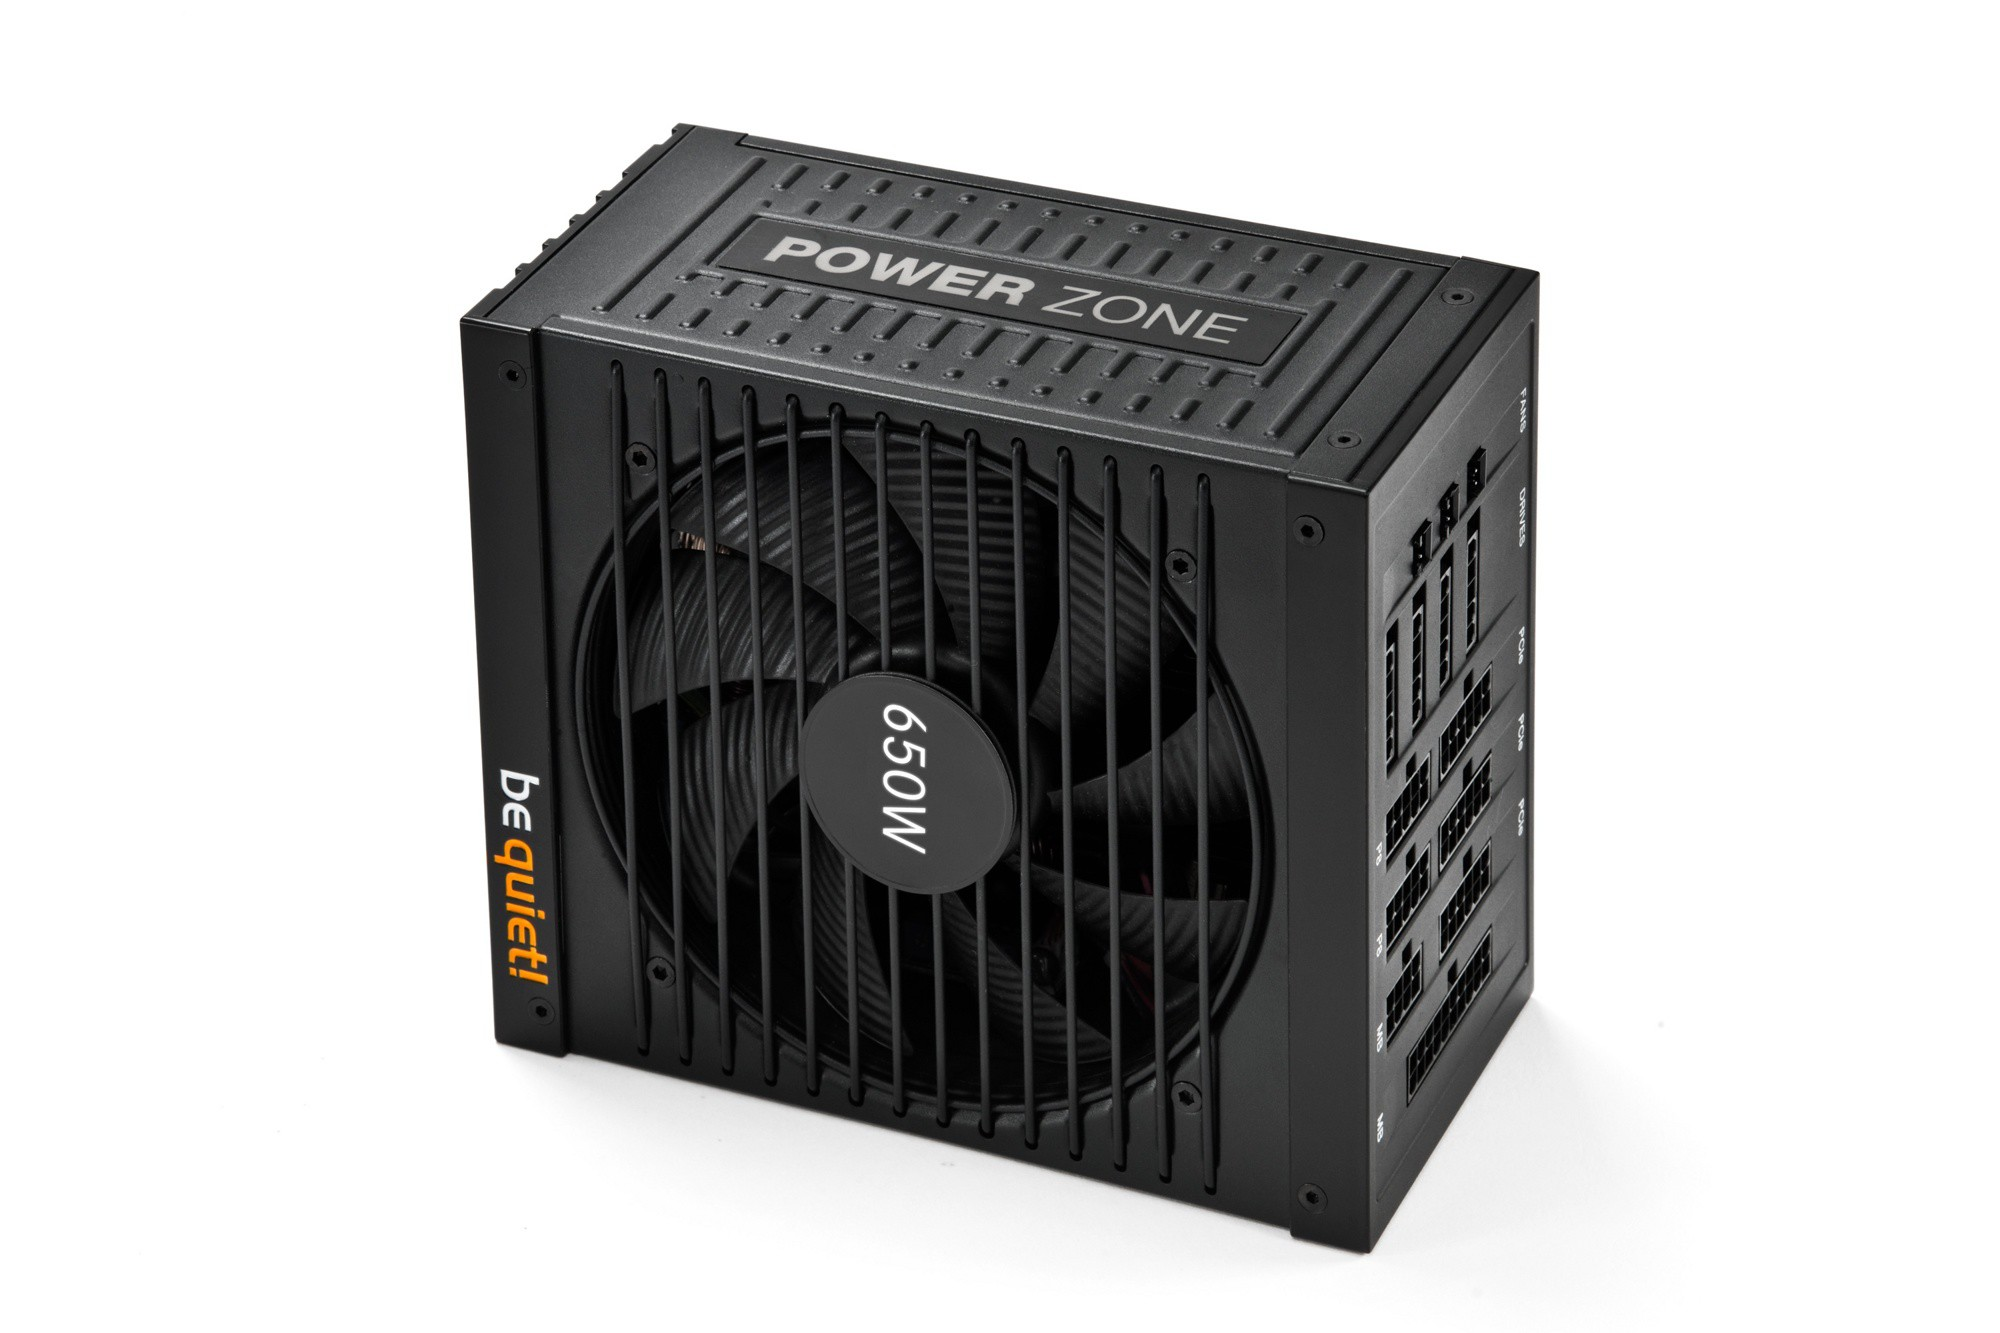 Блок питания 650W be quiet! Power Zone (BN210) (24+8pin, 4x6/8pin, 4xMolex, 10xSATA, 80+ Bronze, модульный)